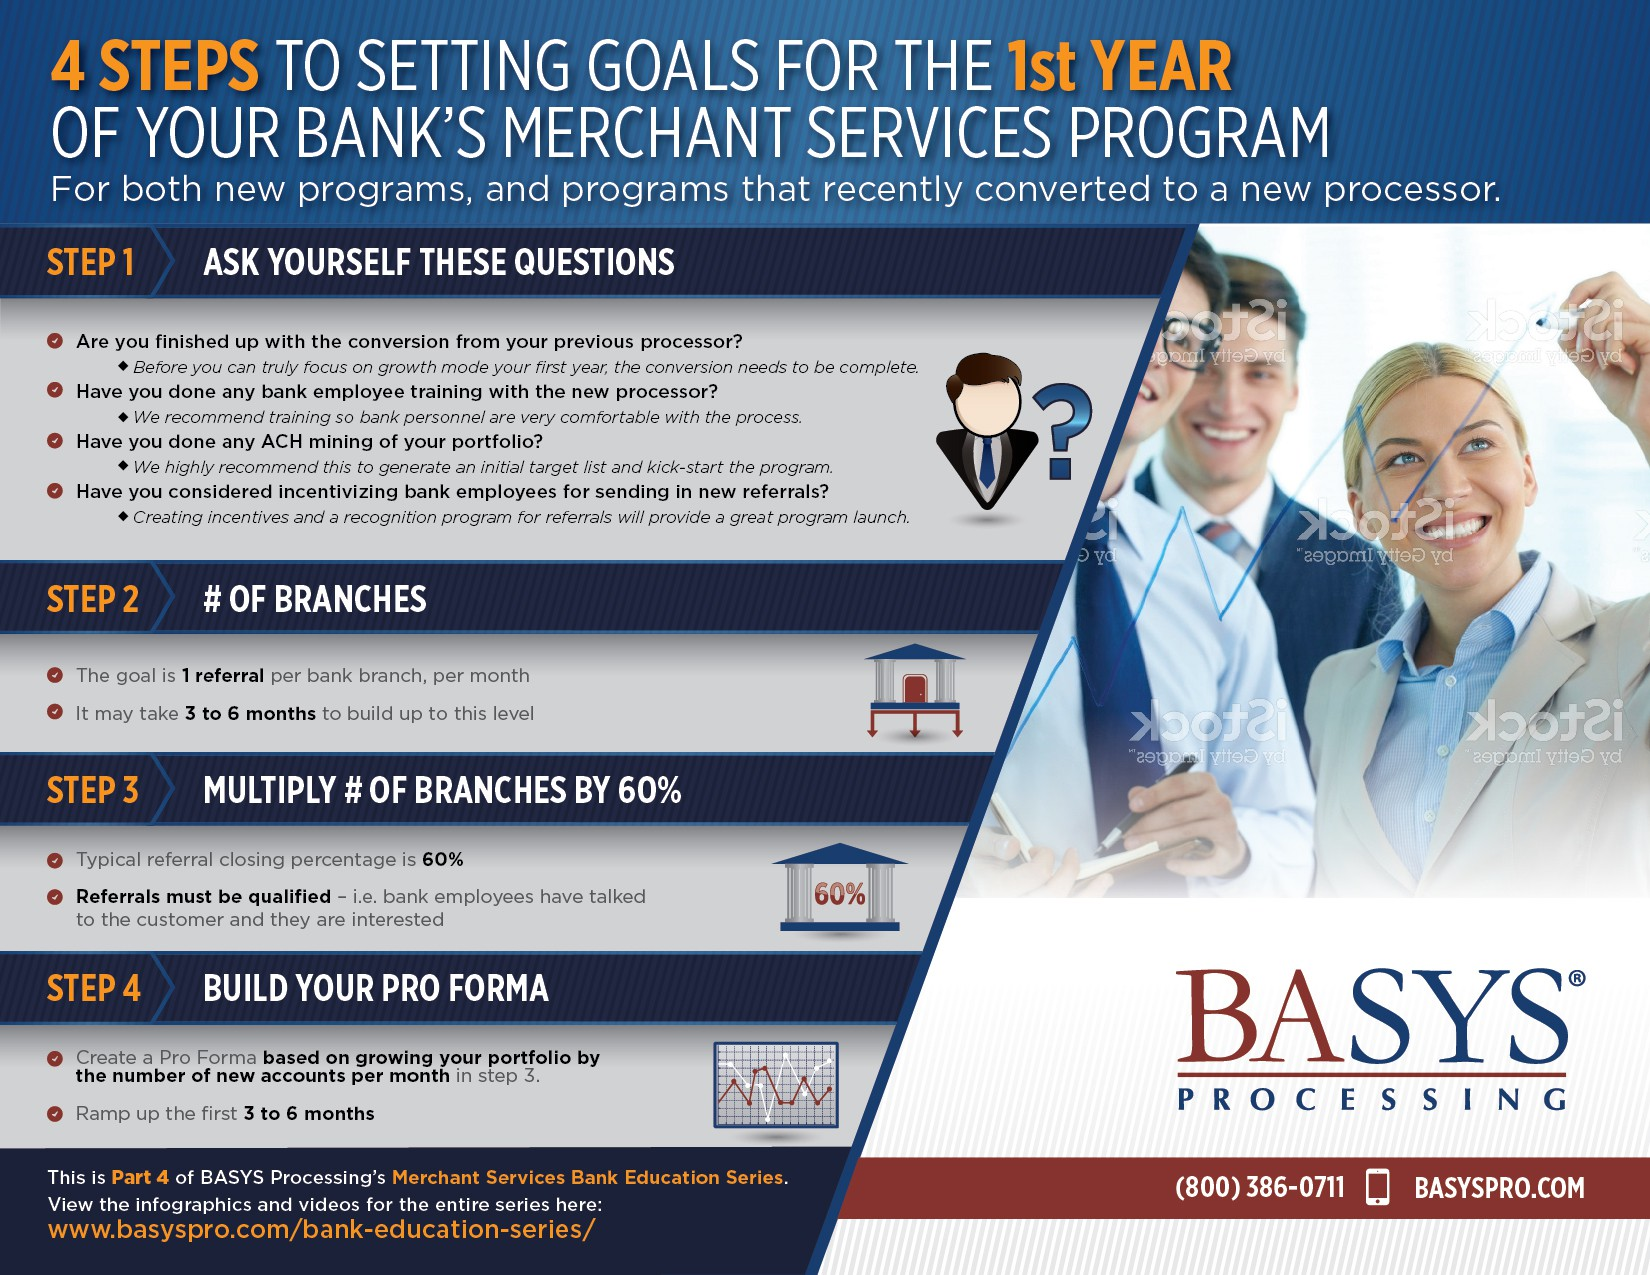 4 Steps to Setting Goals for the 1st Year of Your Bank's Merchant Services Program